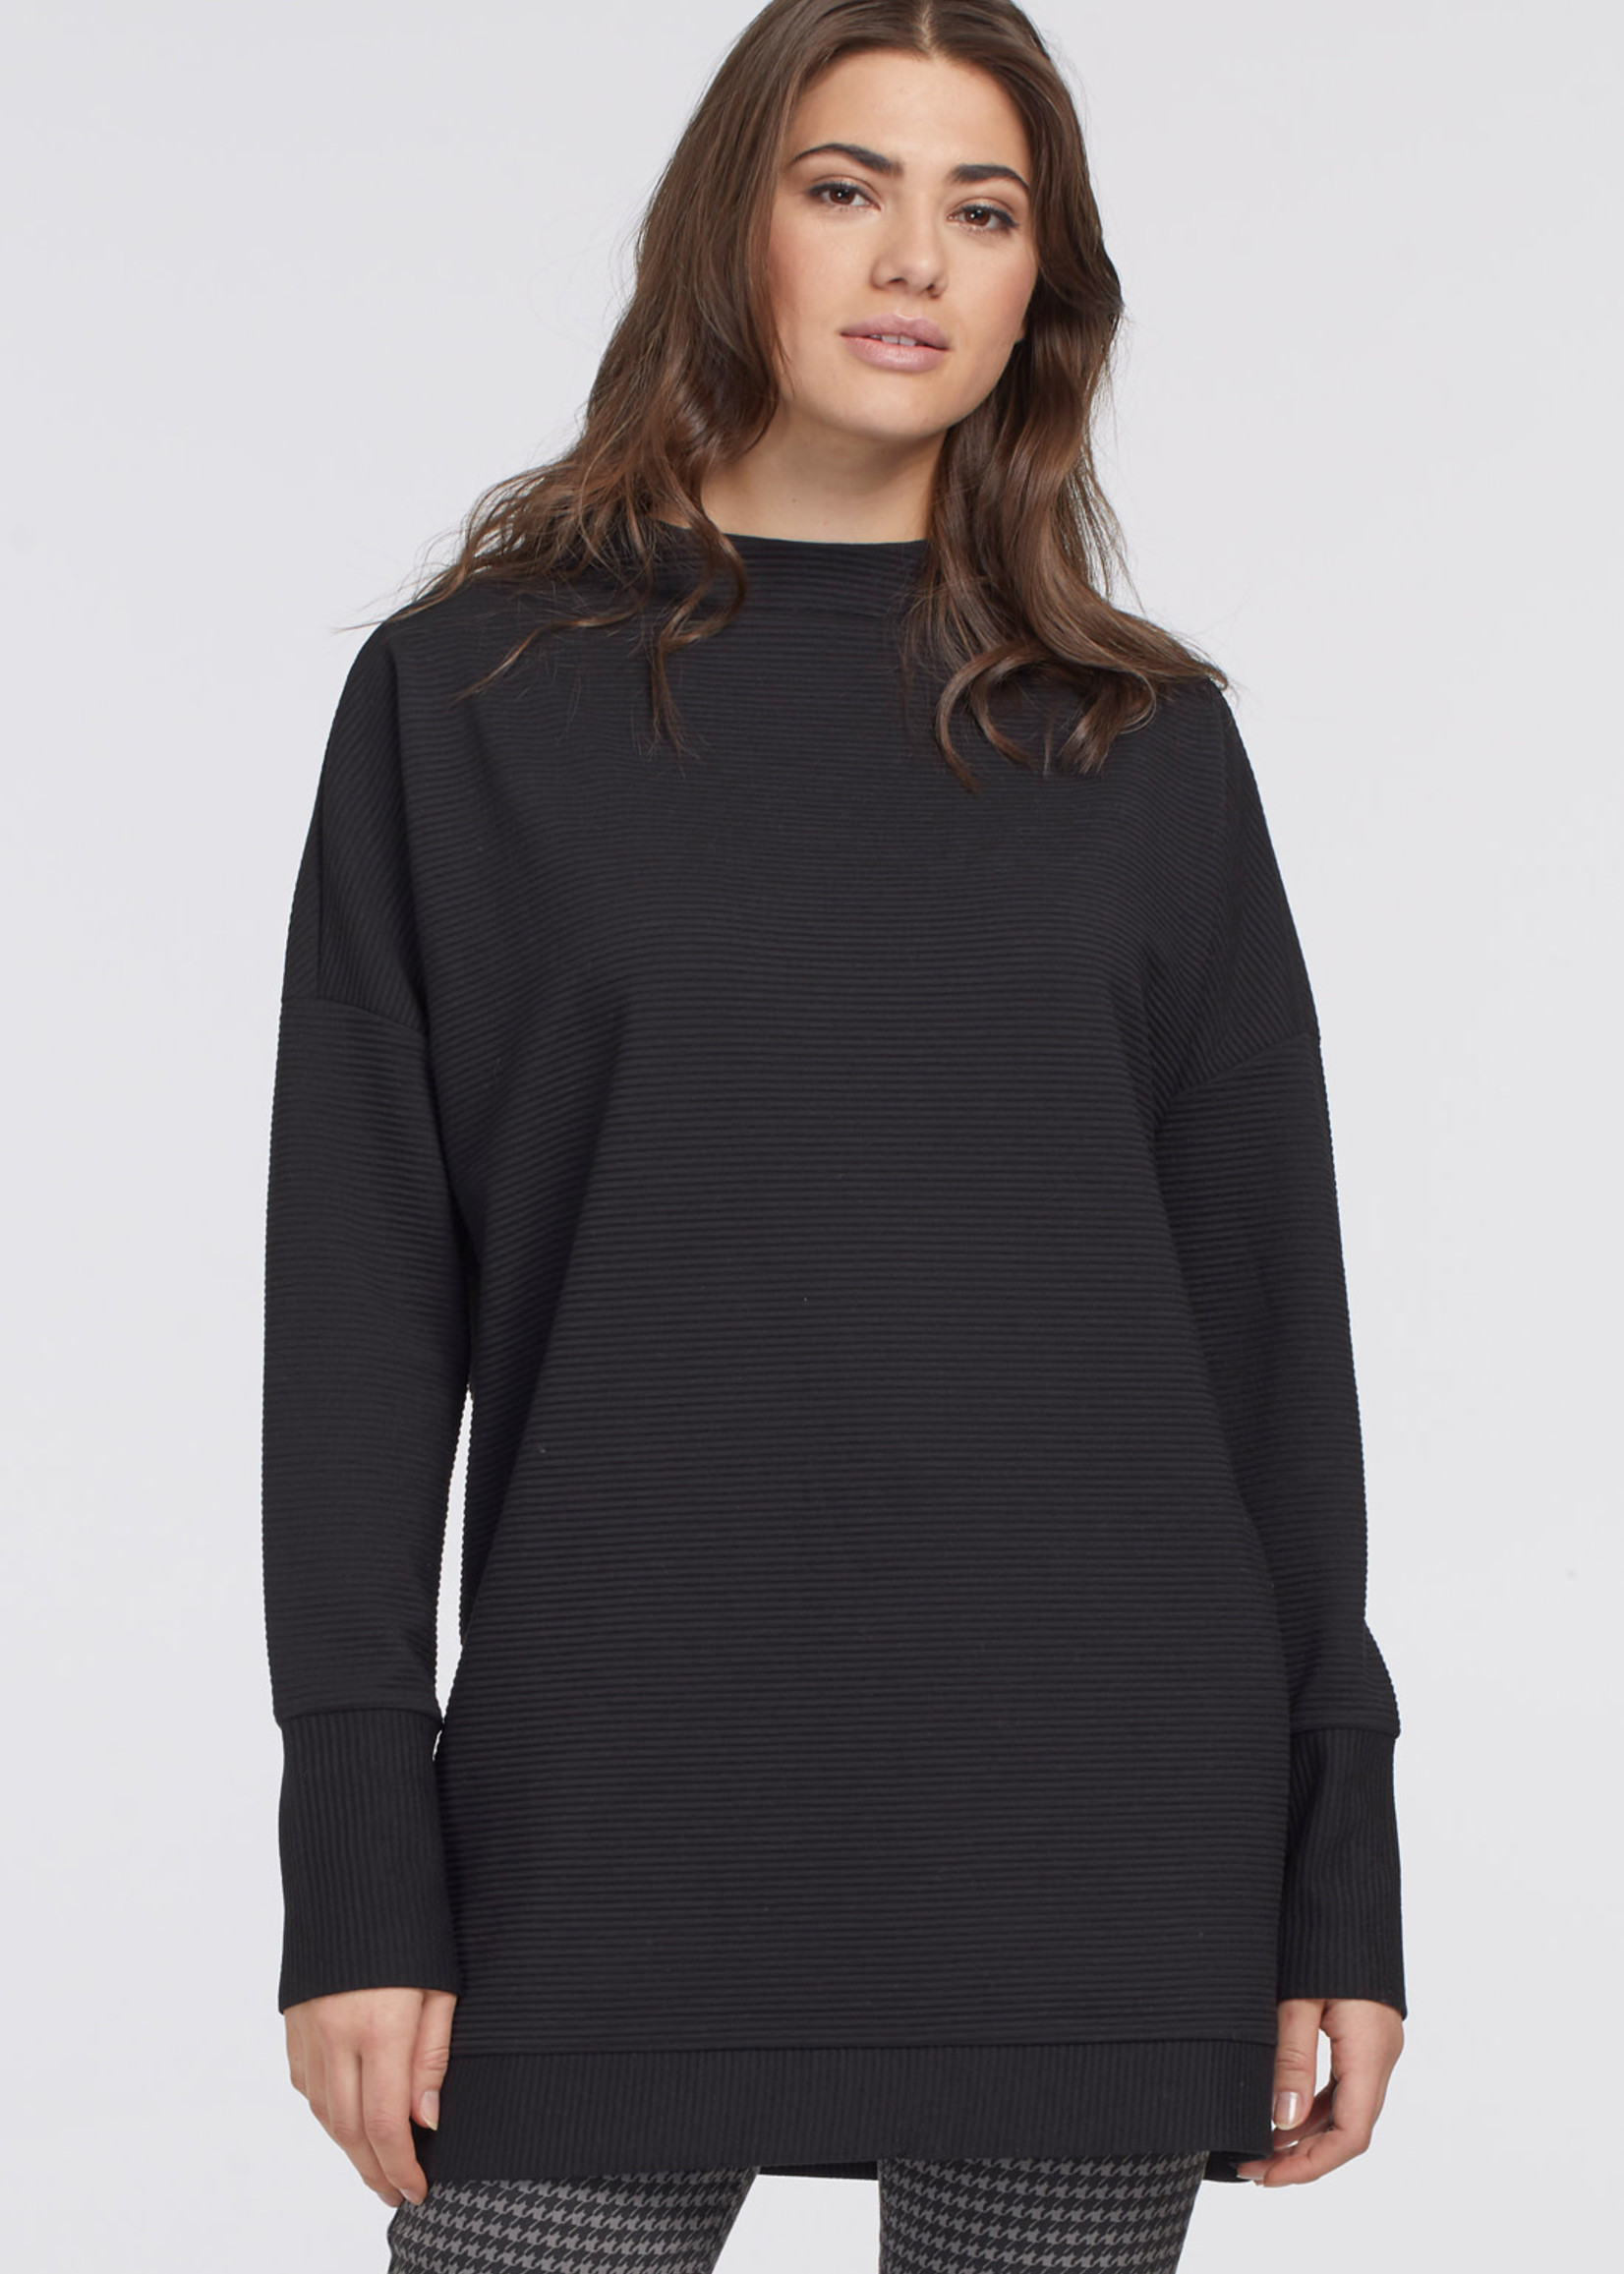 Tribal Funnel Neck Tunic with Ribbing 68500/4299